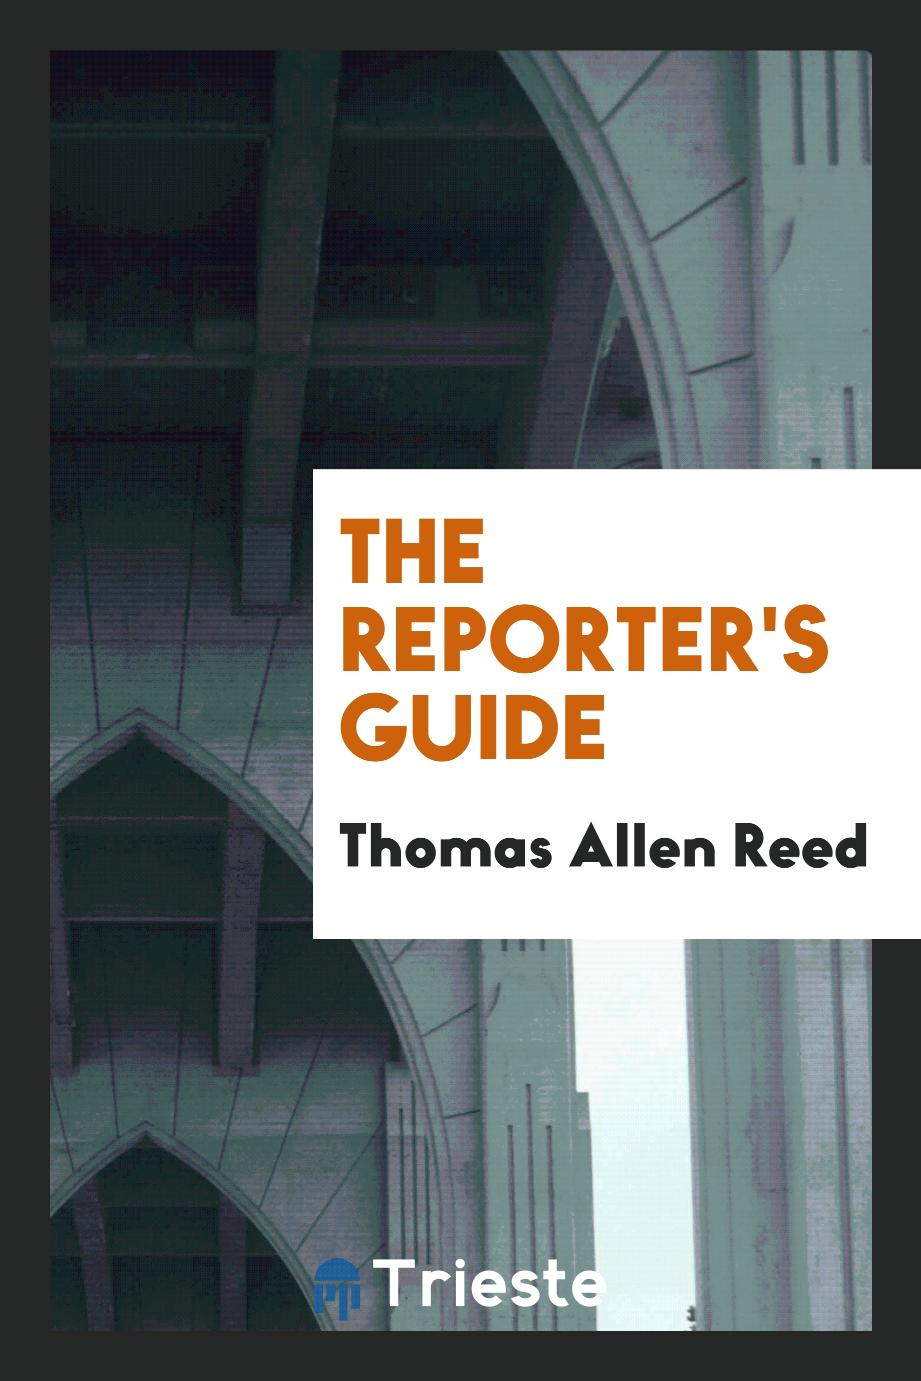 Thomas Allen Reed - The Reporter's Guide